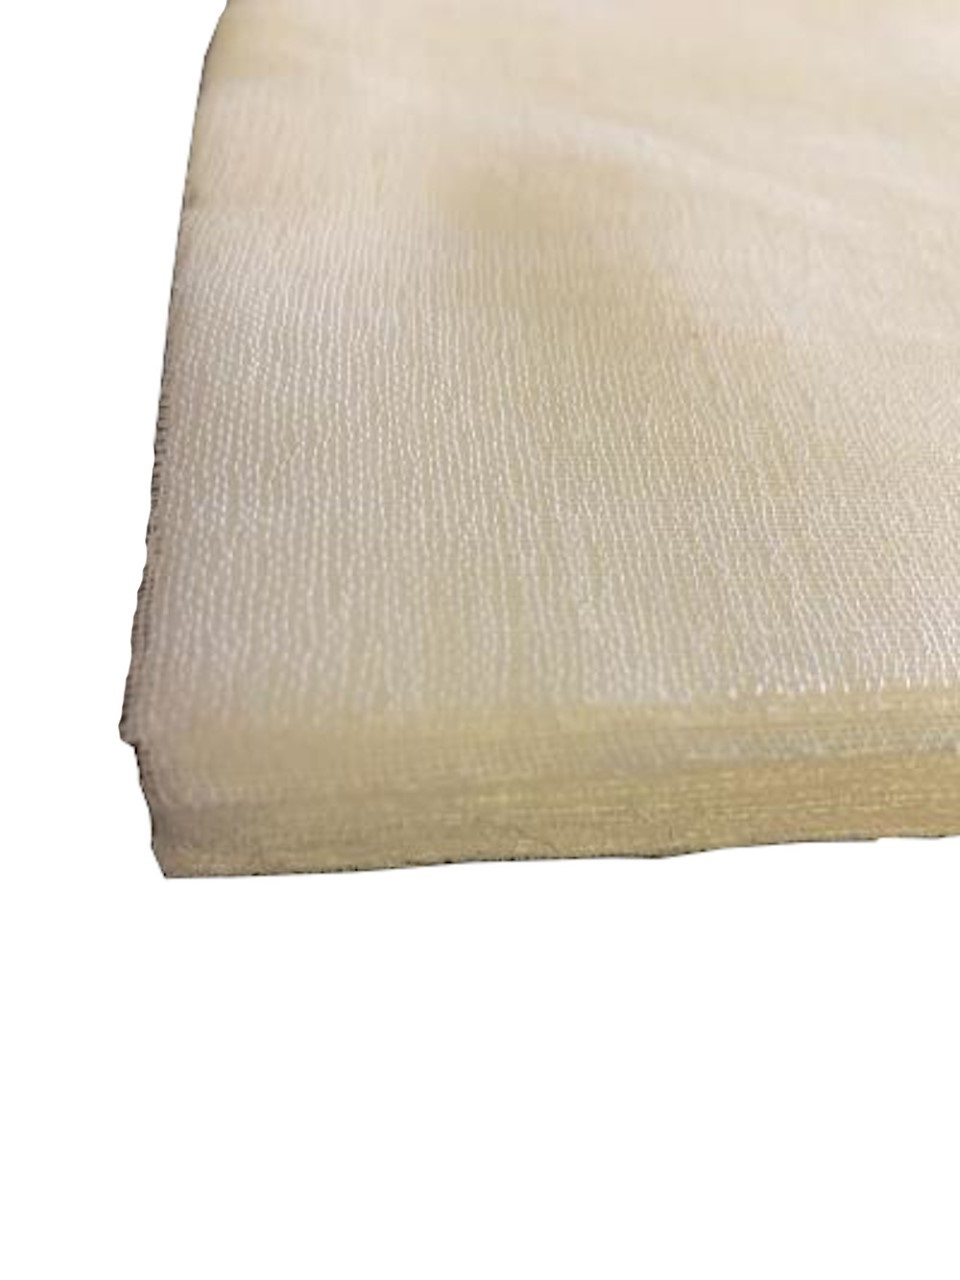 "Grade 90 White Cheesecloth 18"" x 18"" Squares (100 Pack)"